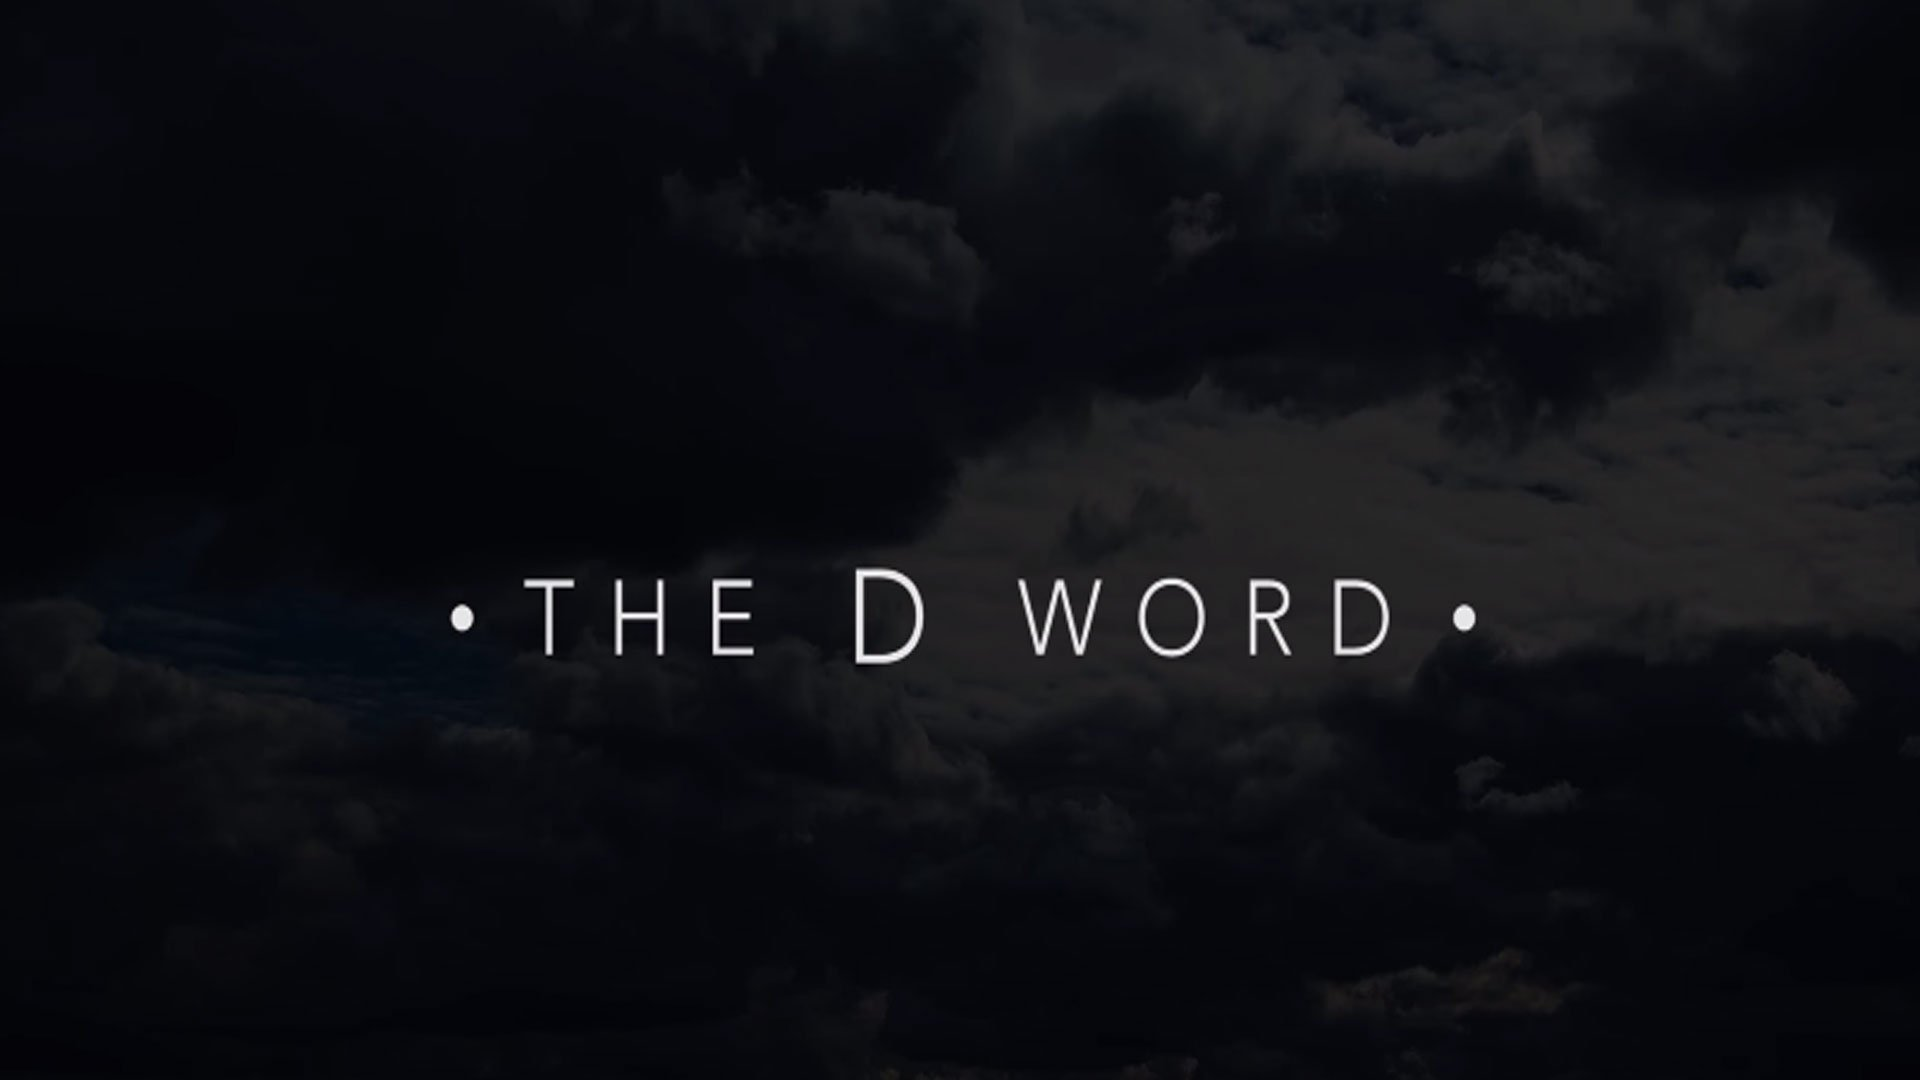 The-D-Word Film Poster